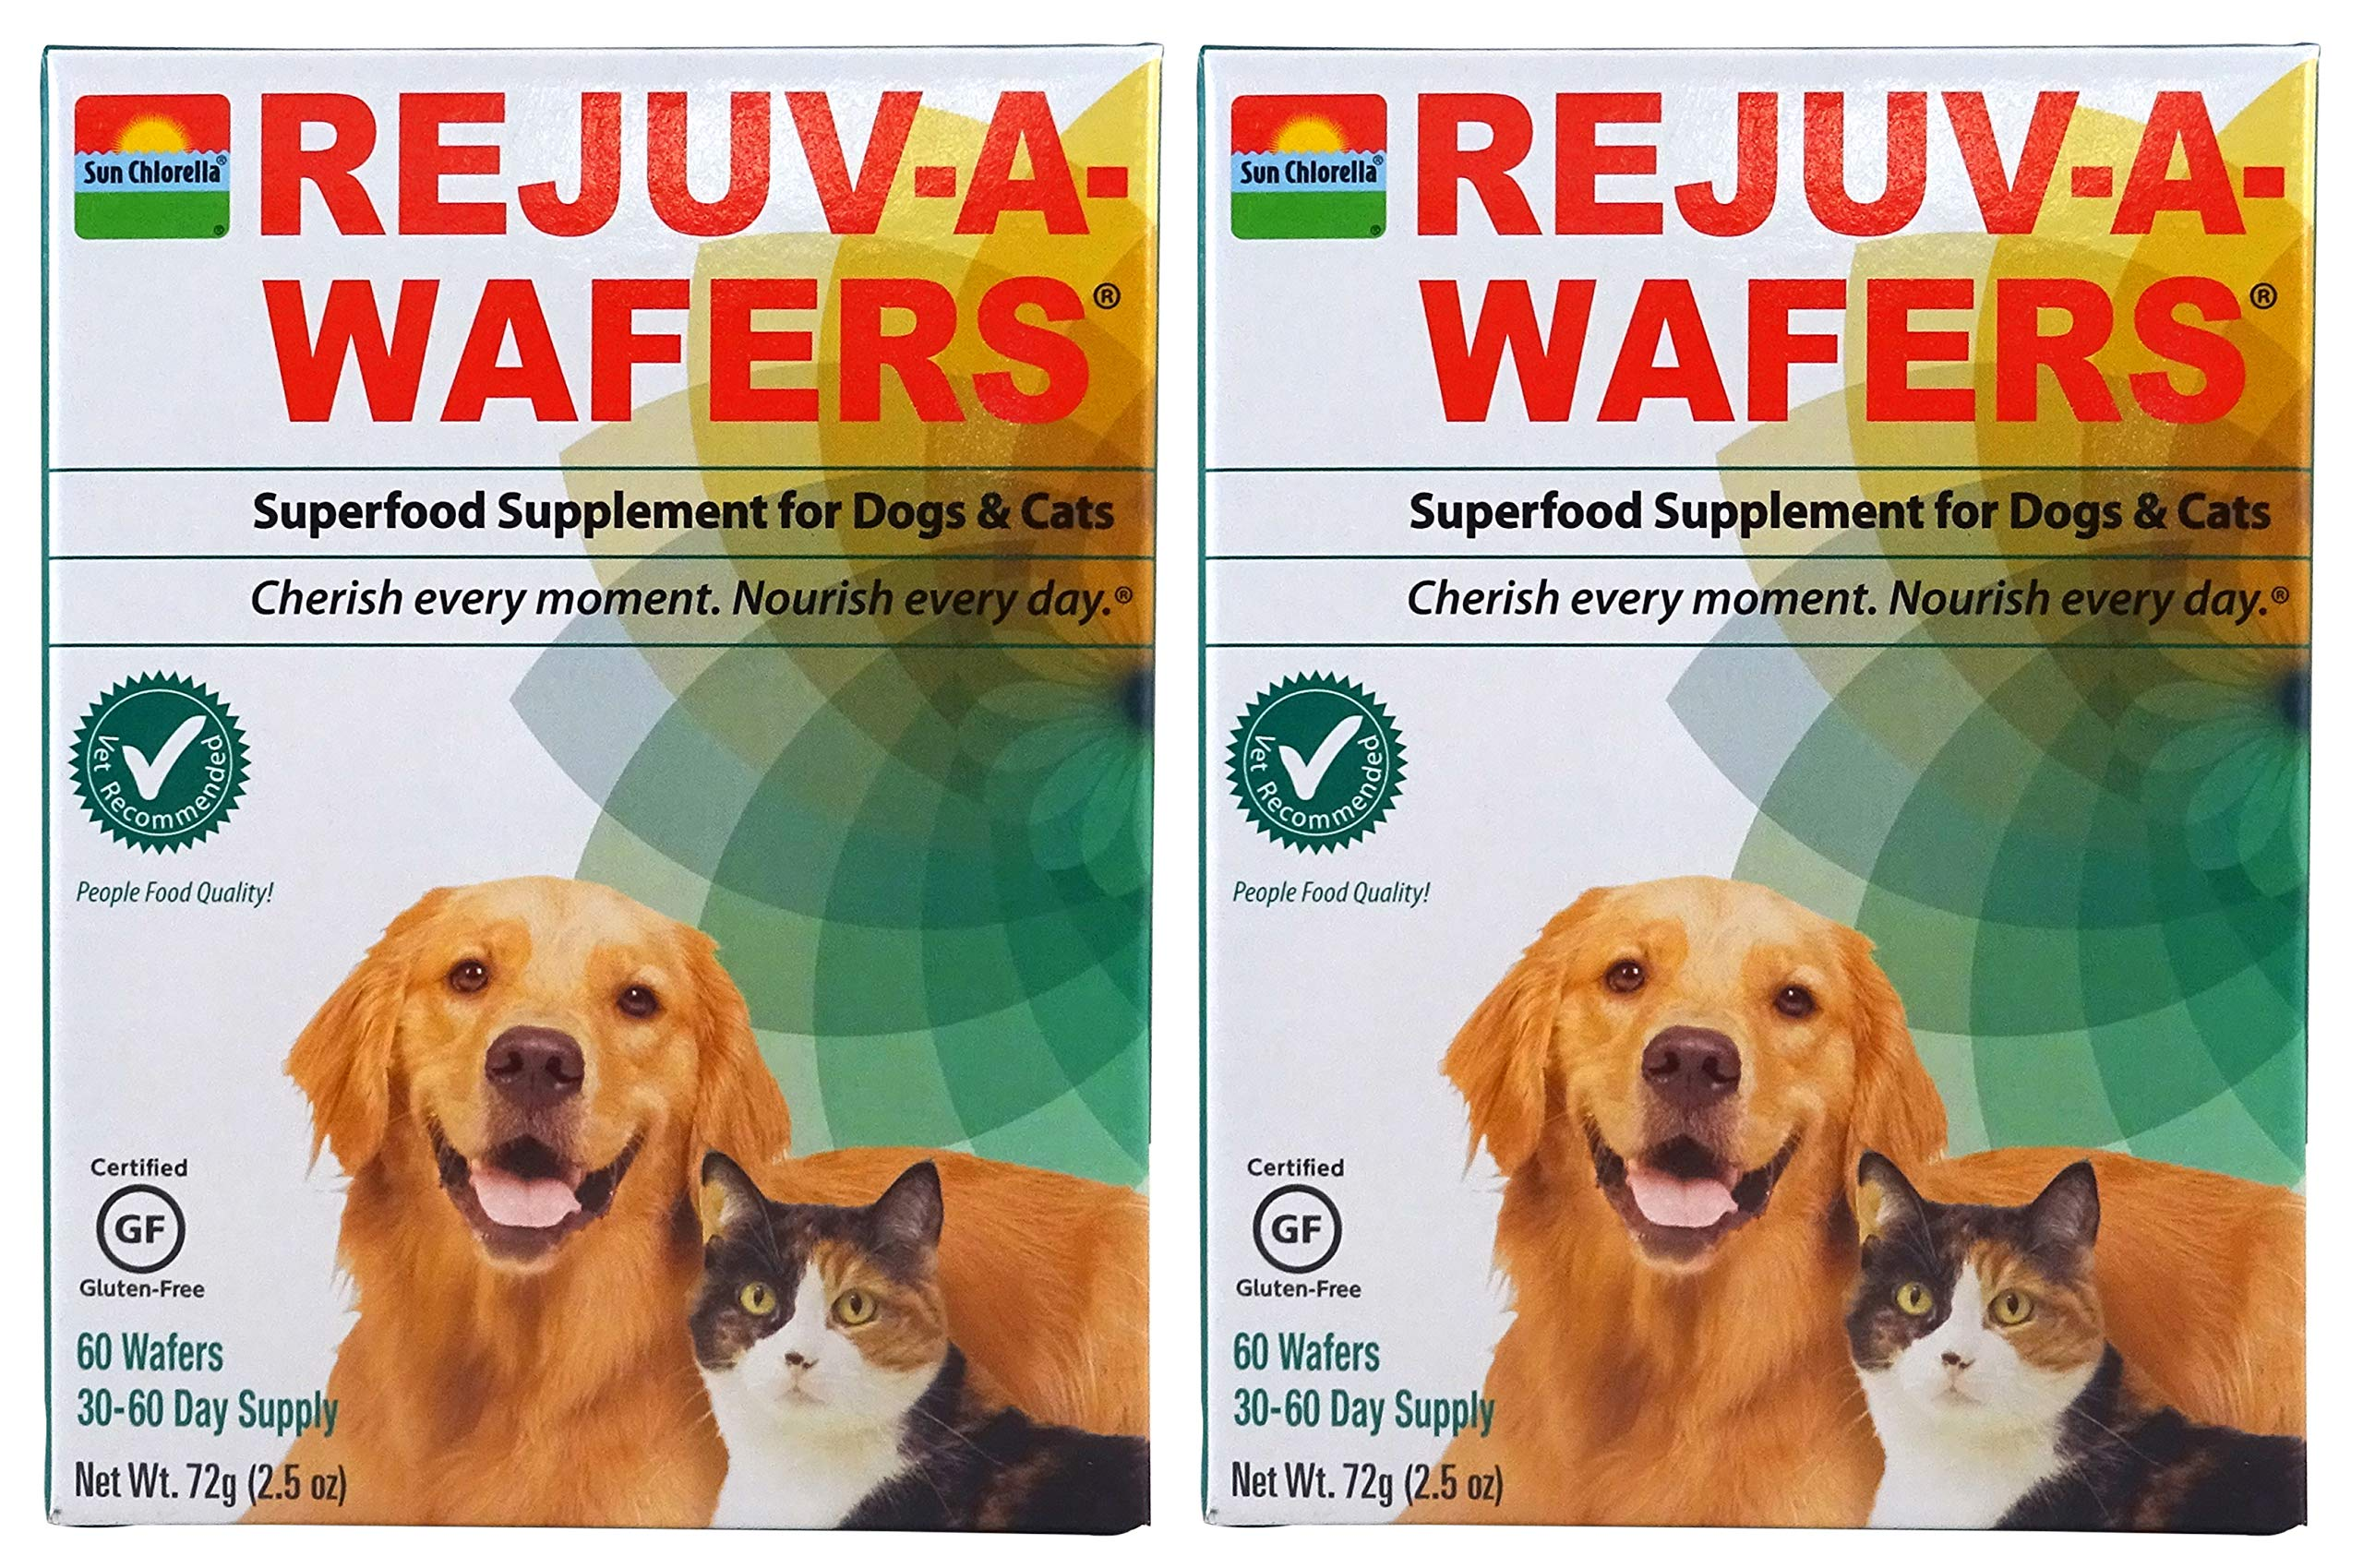 SUN CHLORELLA Rejuv-A-Wafers - Chlorella & Eleuthero Superfood Supplement For Dogs And Cats (60 Wafers) PACK OF TWO by Sun Chlorella